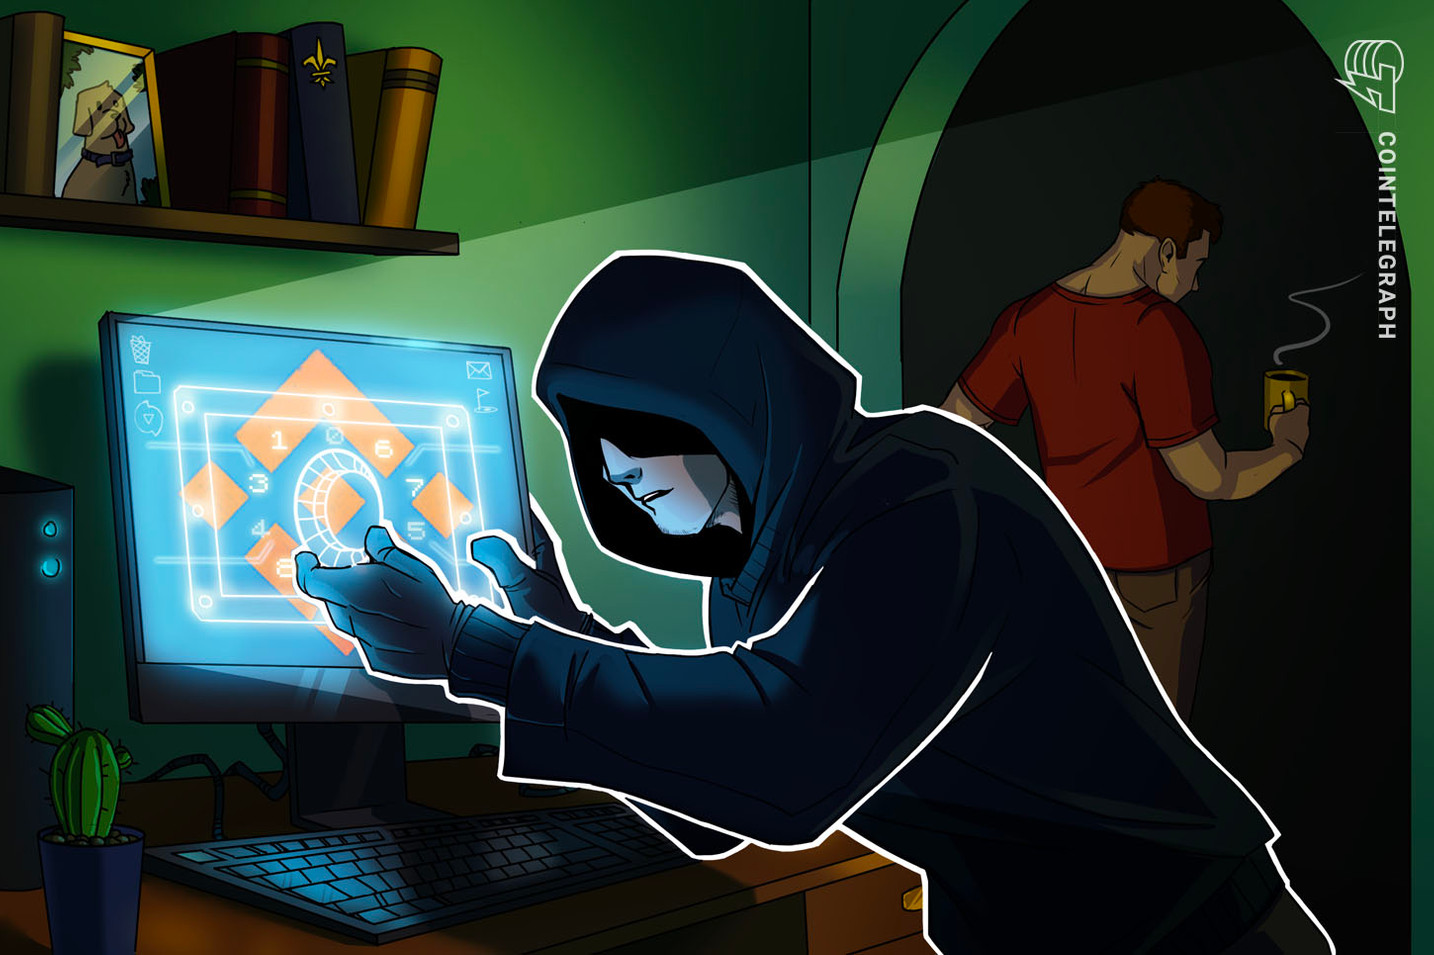 Hackers retiran 7,000 bitcoins por fallo de seguridad en Binance